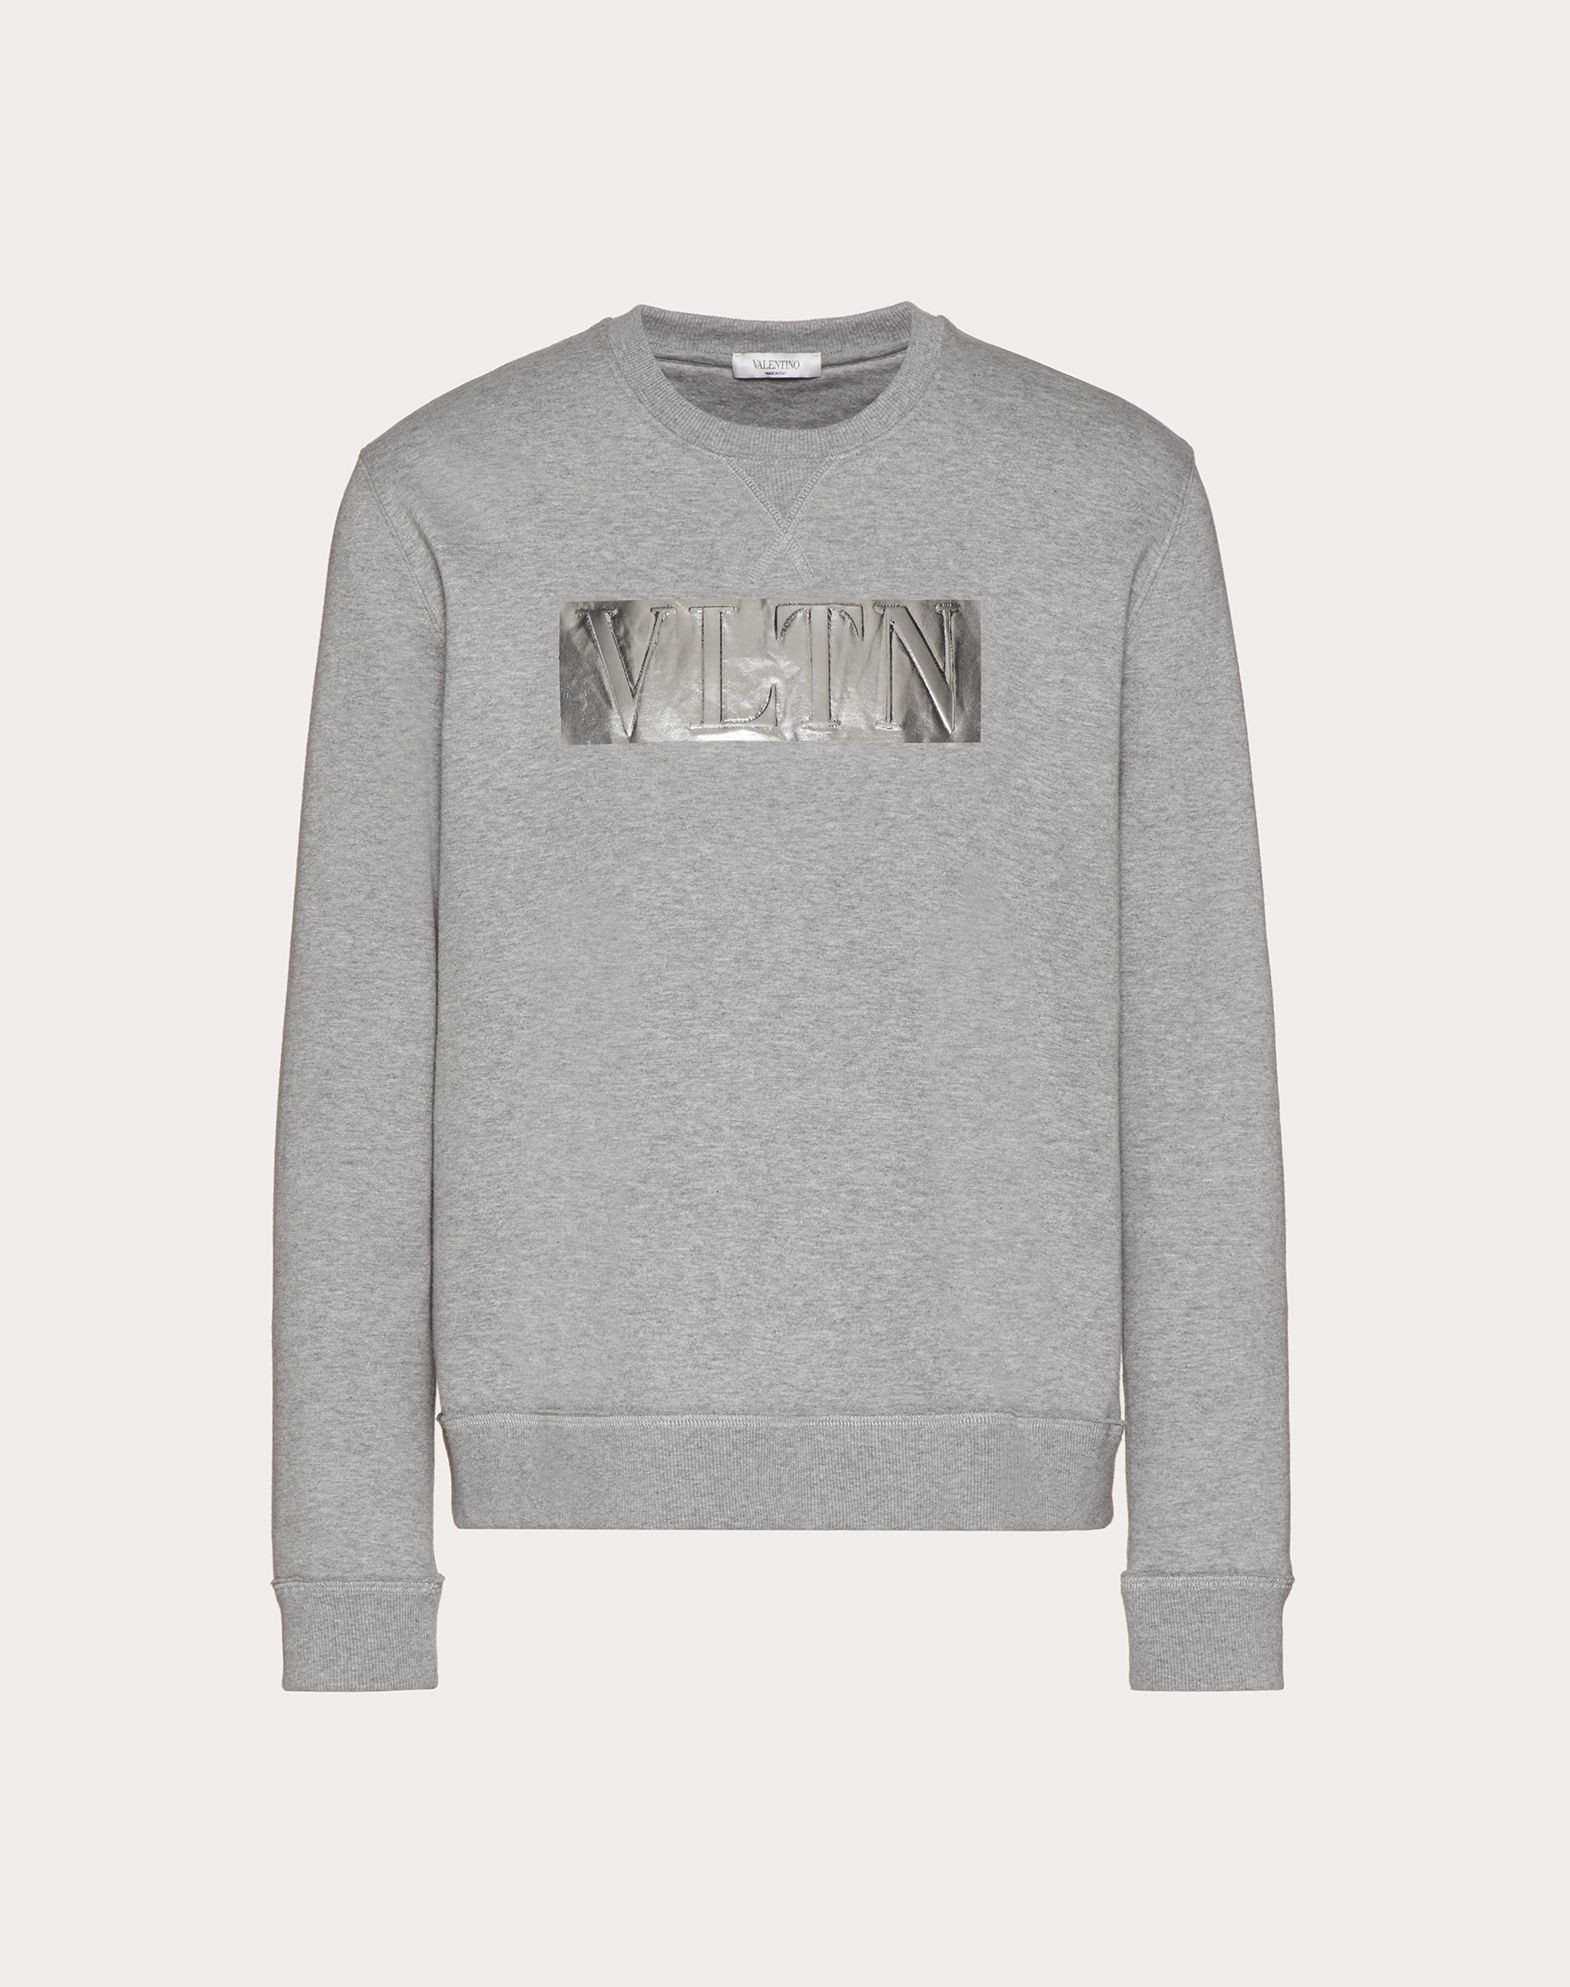 LAMINATED EMBOSSED VLTN CREW-NECK SWEATSHIRT